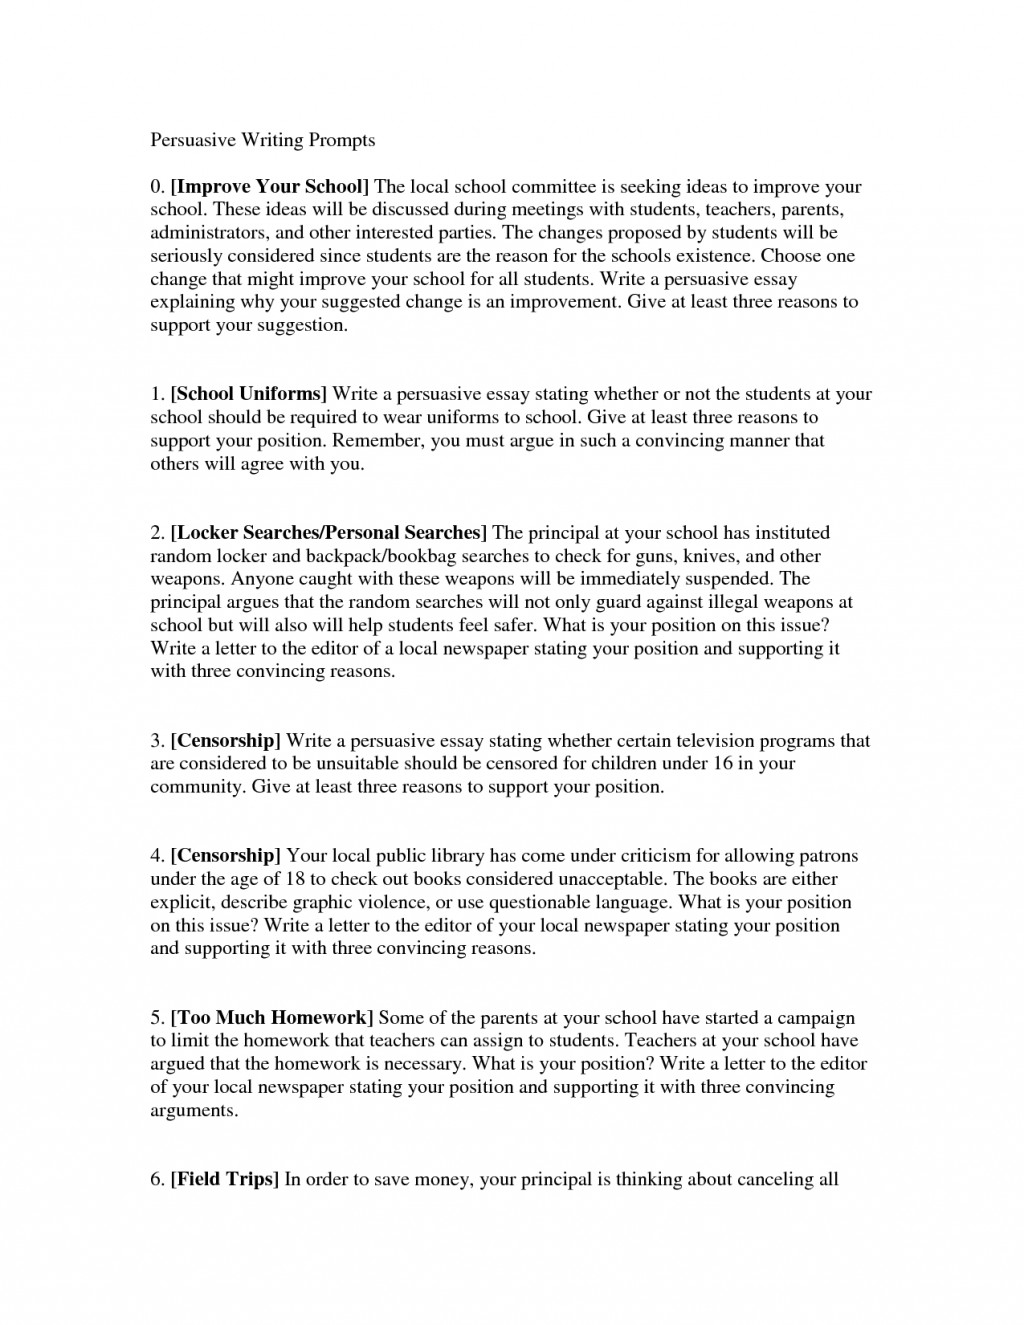 009 6th Grade Essay Topics Example Alluring Sixth Writing Prompts Persuasive In 7th Madrat Surprising Reflective Narrative Science Large